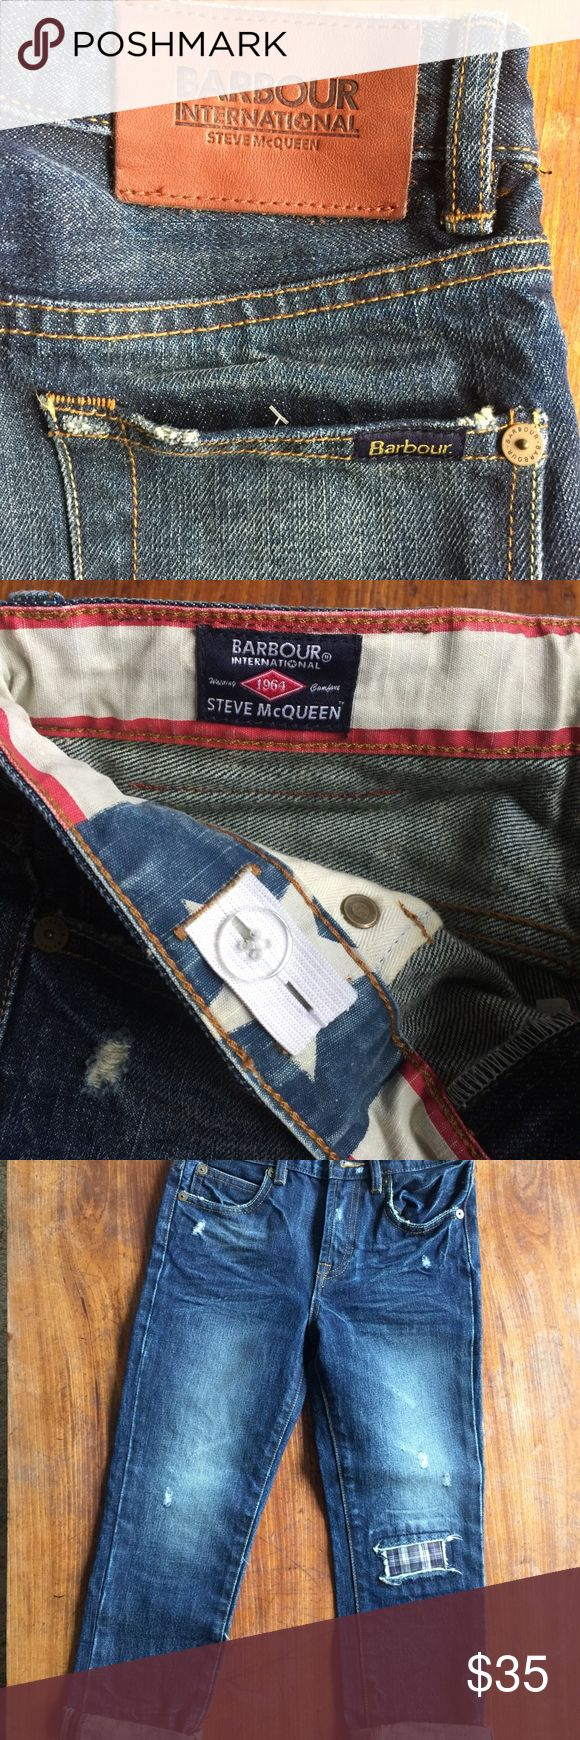 """NWOT Barbour Kids Jeans The Barbour Steve Mcqueen™ Collection was launched at the Italian stockist WP Lavori, Florence. My husband bought them for our daughter last year, she never wore them, she went/is going through a """"no jeans"""" phase. Our loss is your gain! Barbour Bottoms Jeans"""